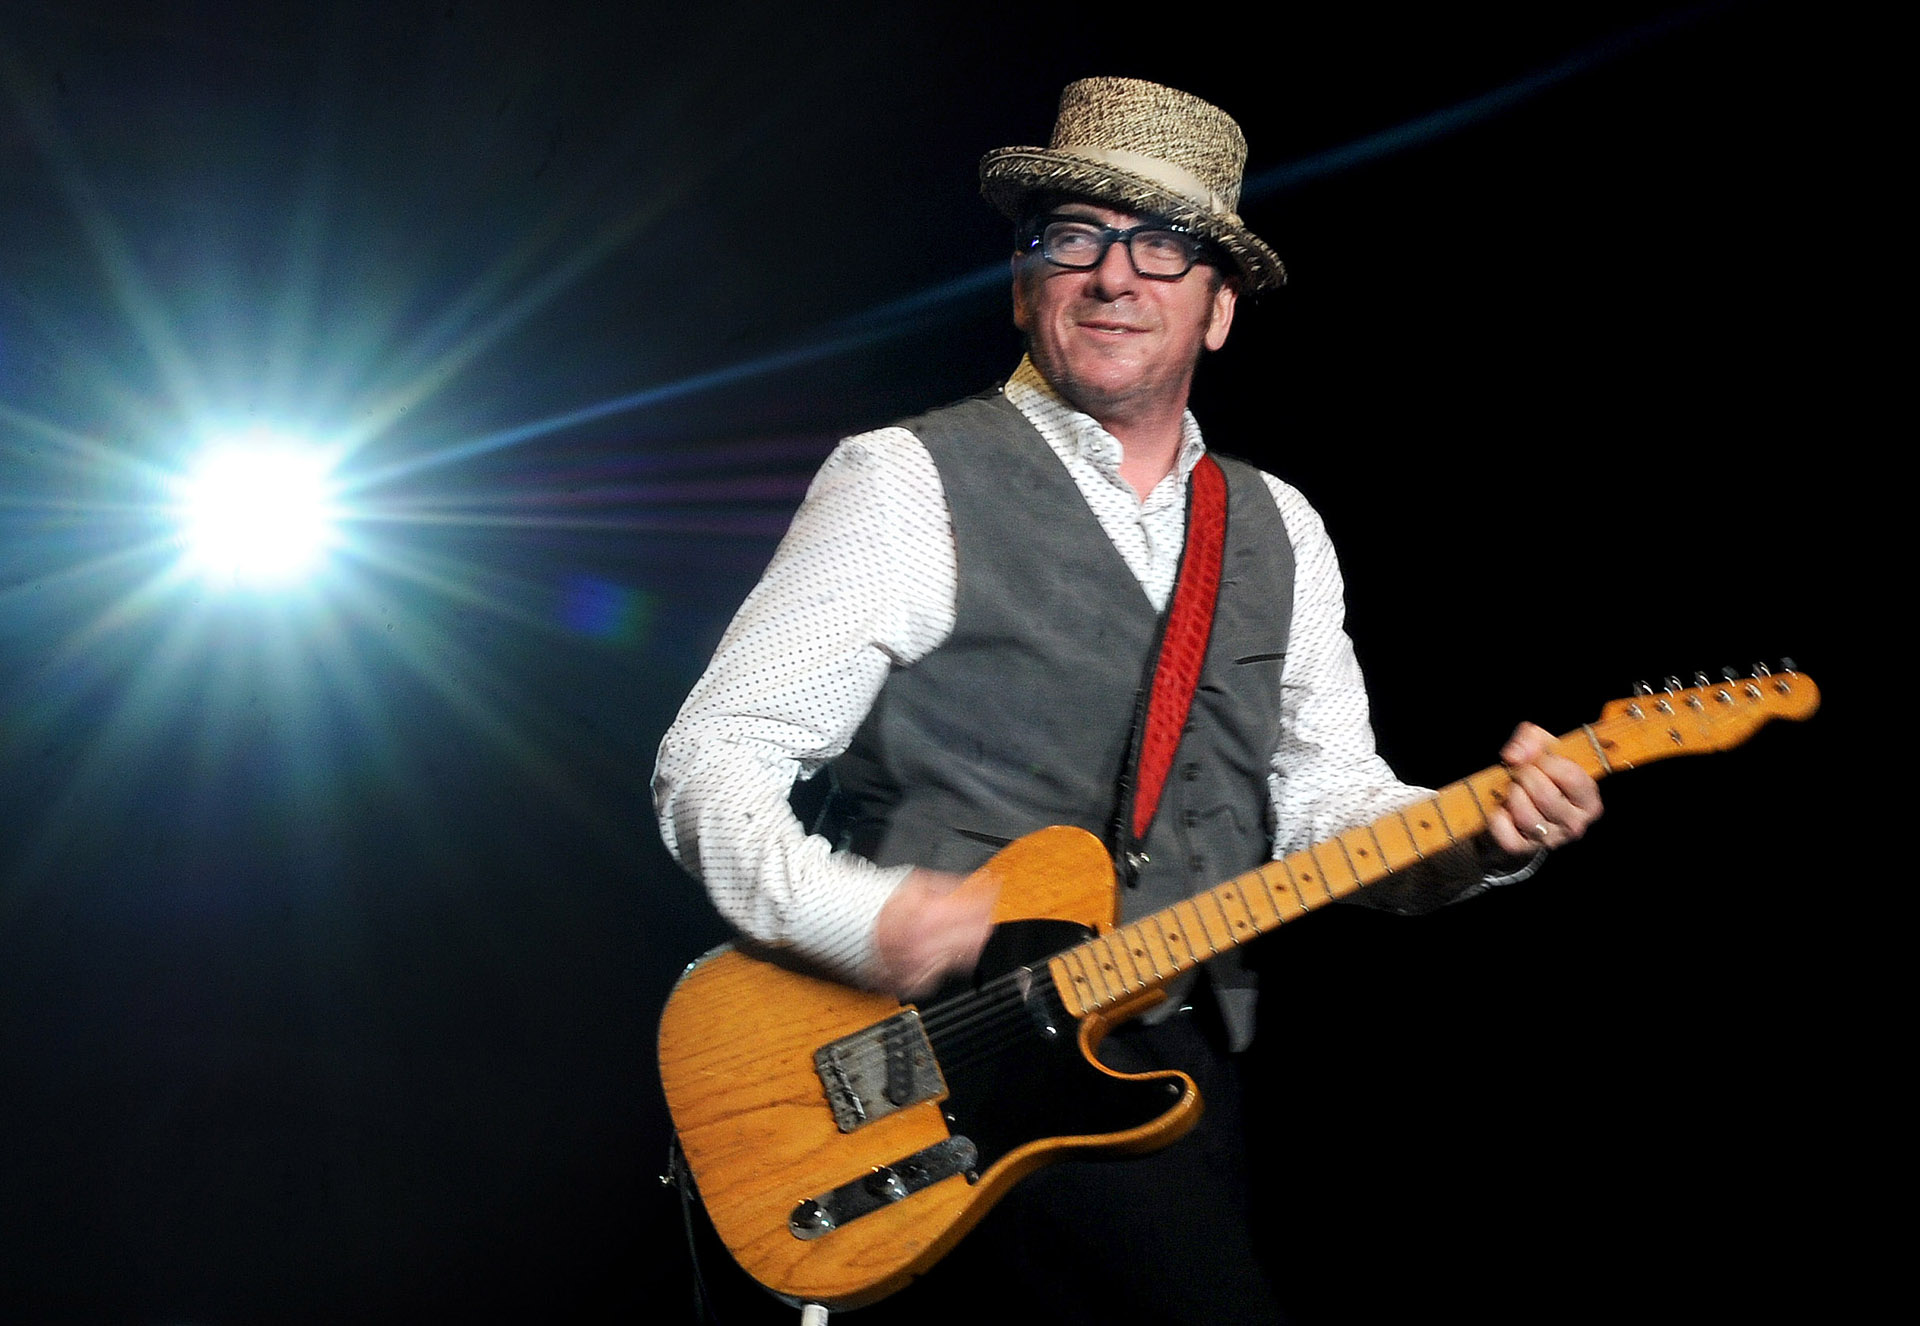 Elvis Costello performs during The Gathering of the Vibes festival on July 23, 2011.